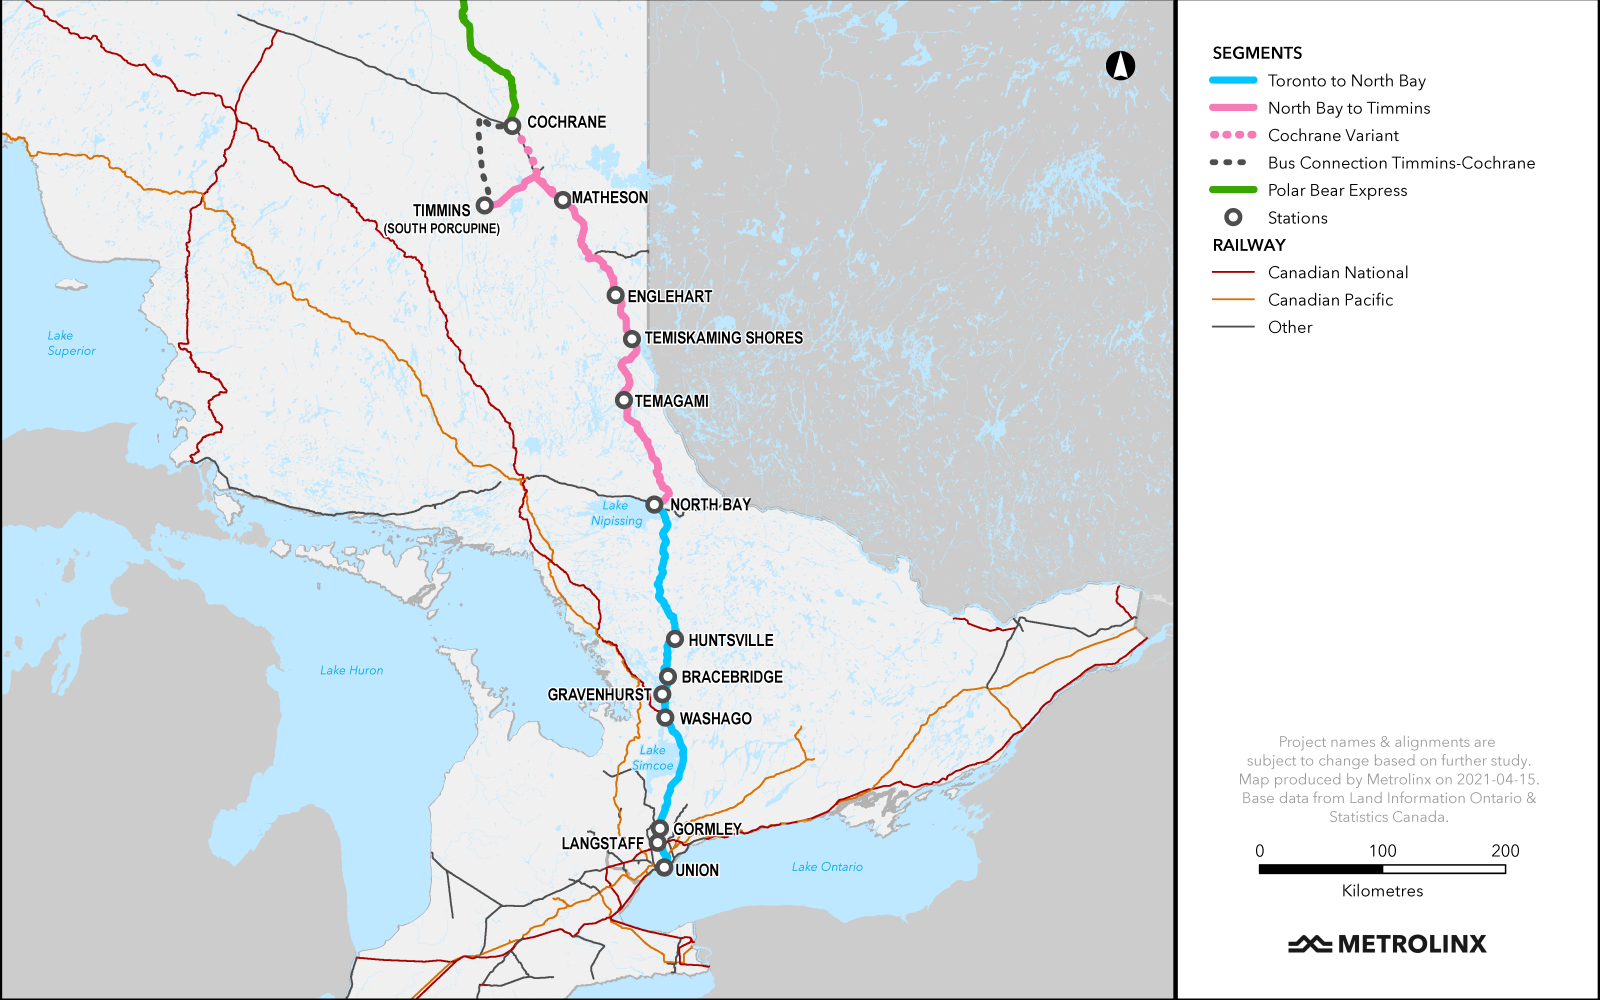 In 2012, Northlander passenger rail service—between Cochrane, North Bay and Toronto, in conjunction with bus service—was discontinued. Now under study is a 13-stop route serving Toronto (Union Station), Langstaff, Gormley, Washago, Gravenhurst, Bracebridge, Huntsville, North Bay, Temagami, Temiskaming Shores, Englehart, Matheson, and Timmins or Cochrane. Bus service between rail stops would be included.